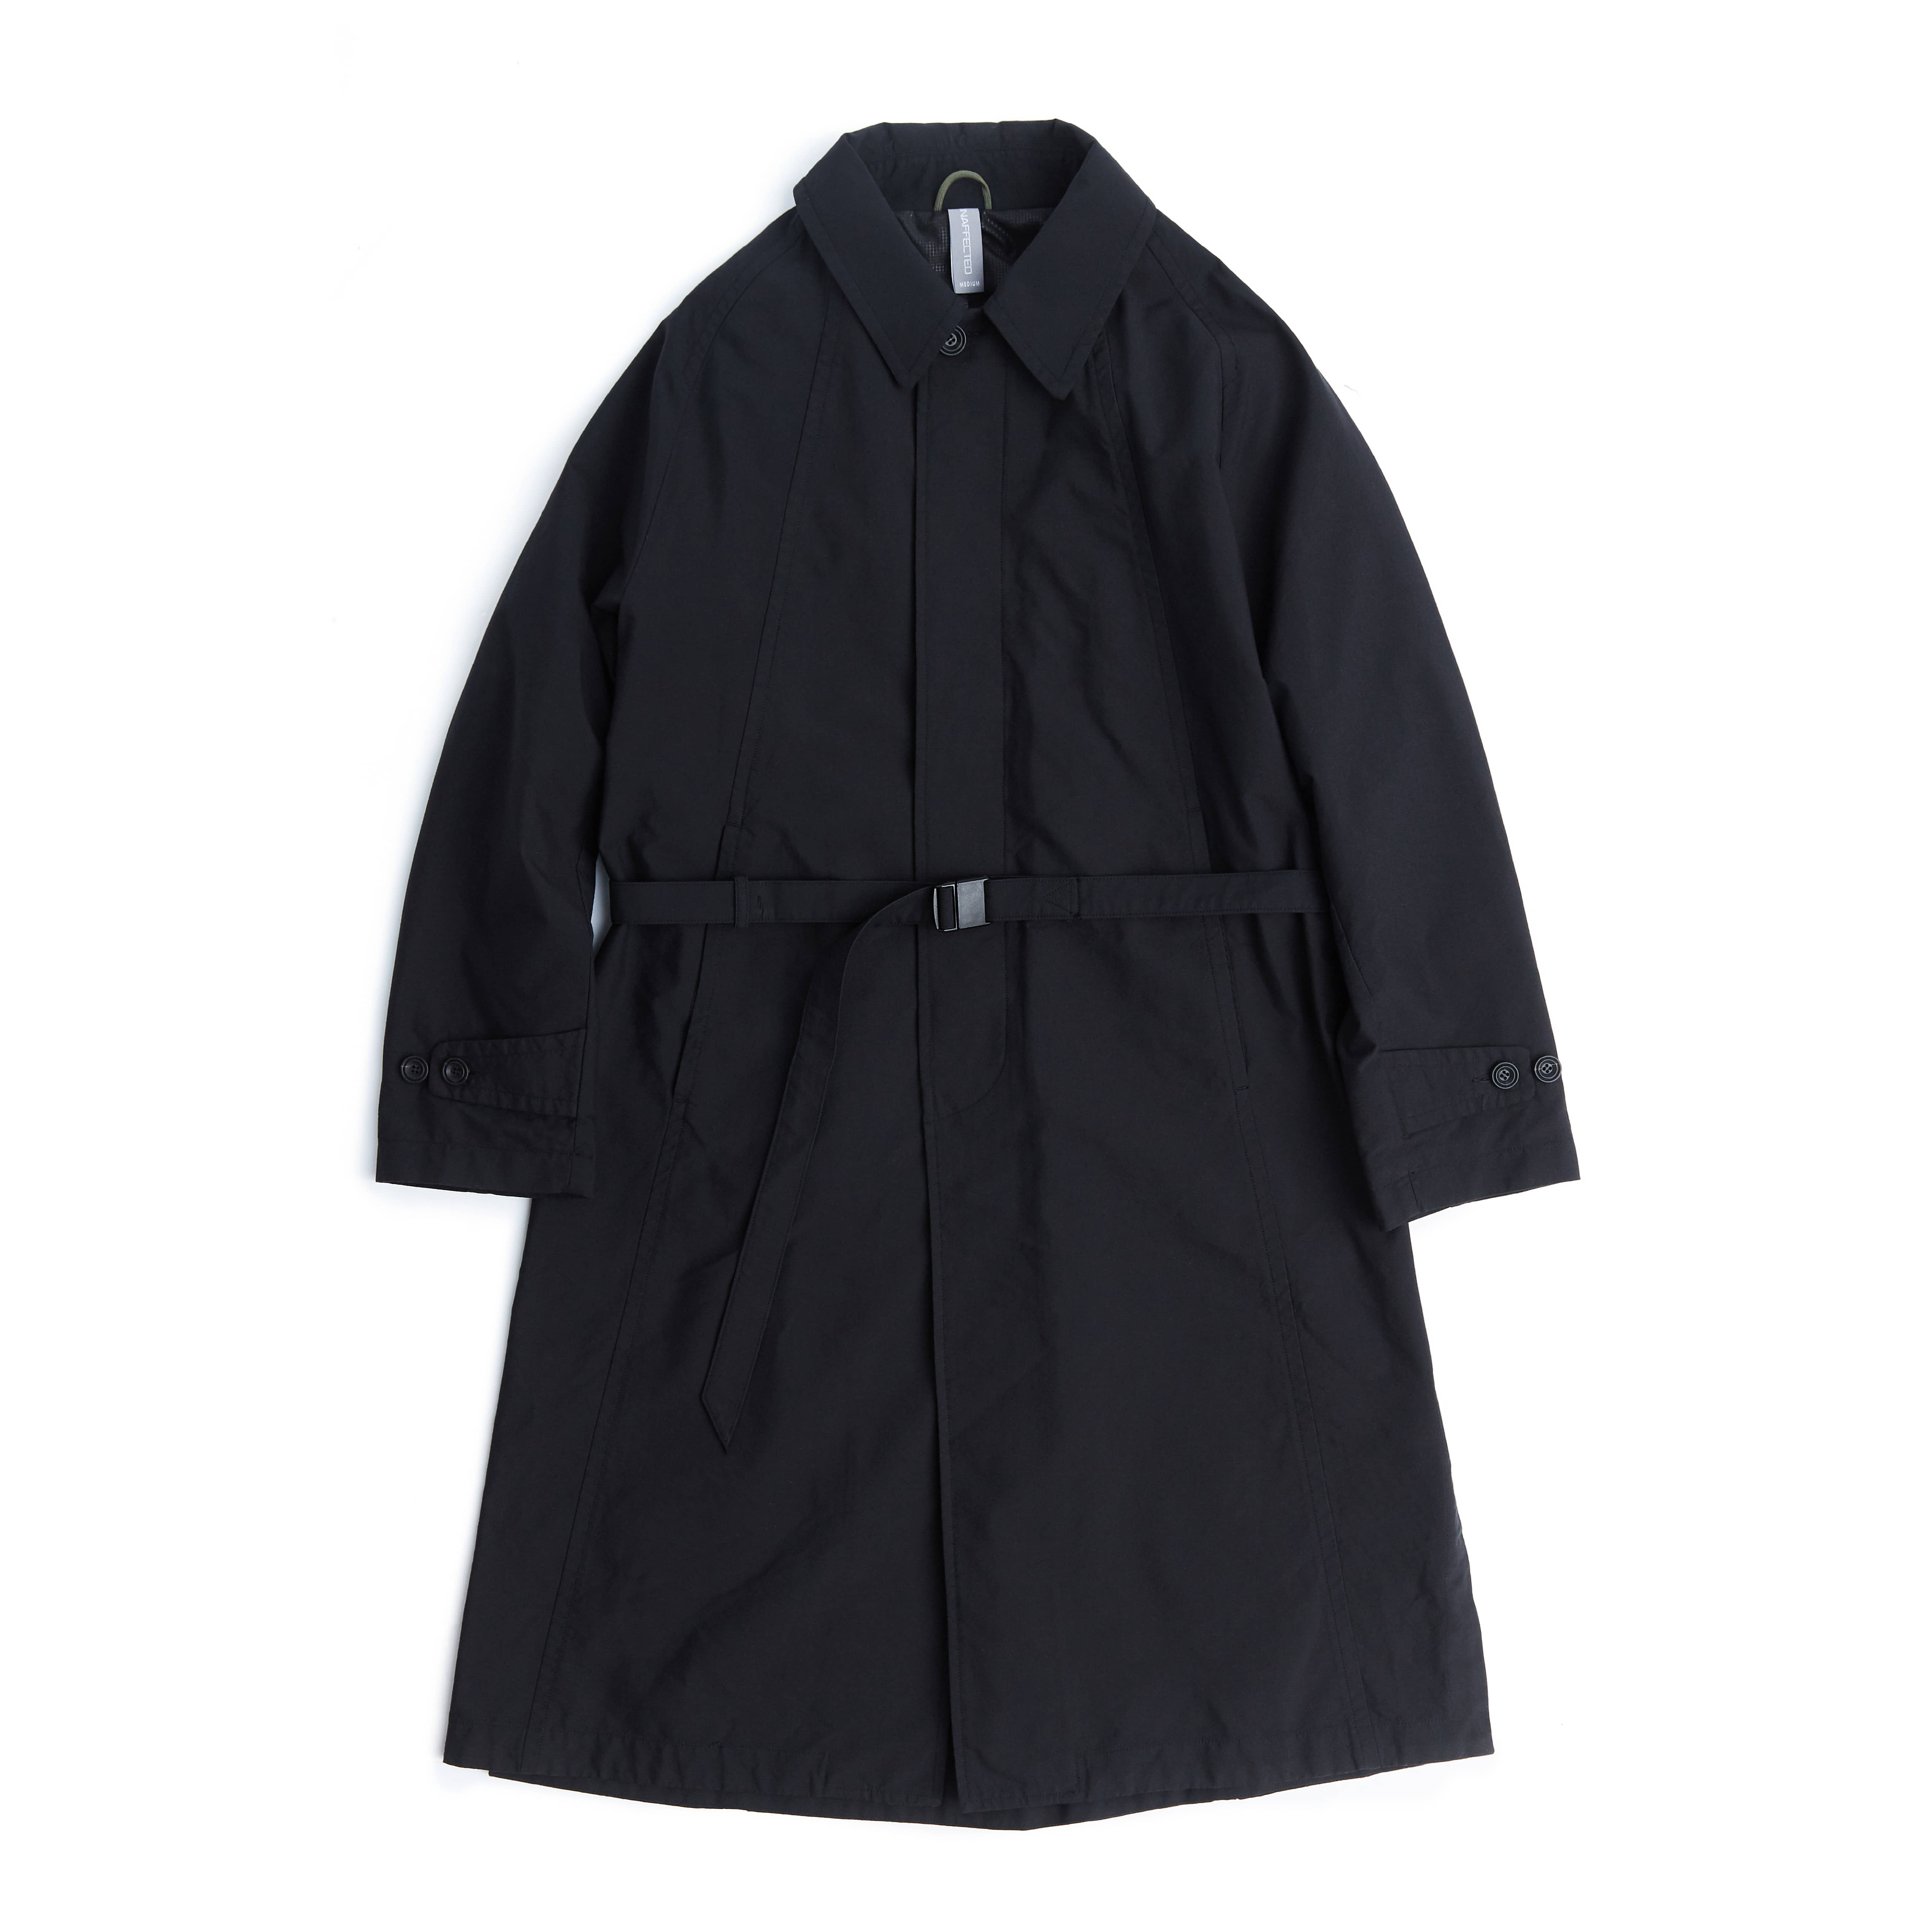 언어펙티드 BELTED SINGLE COAT_Black Cordura